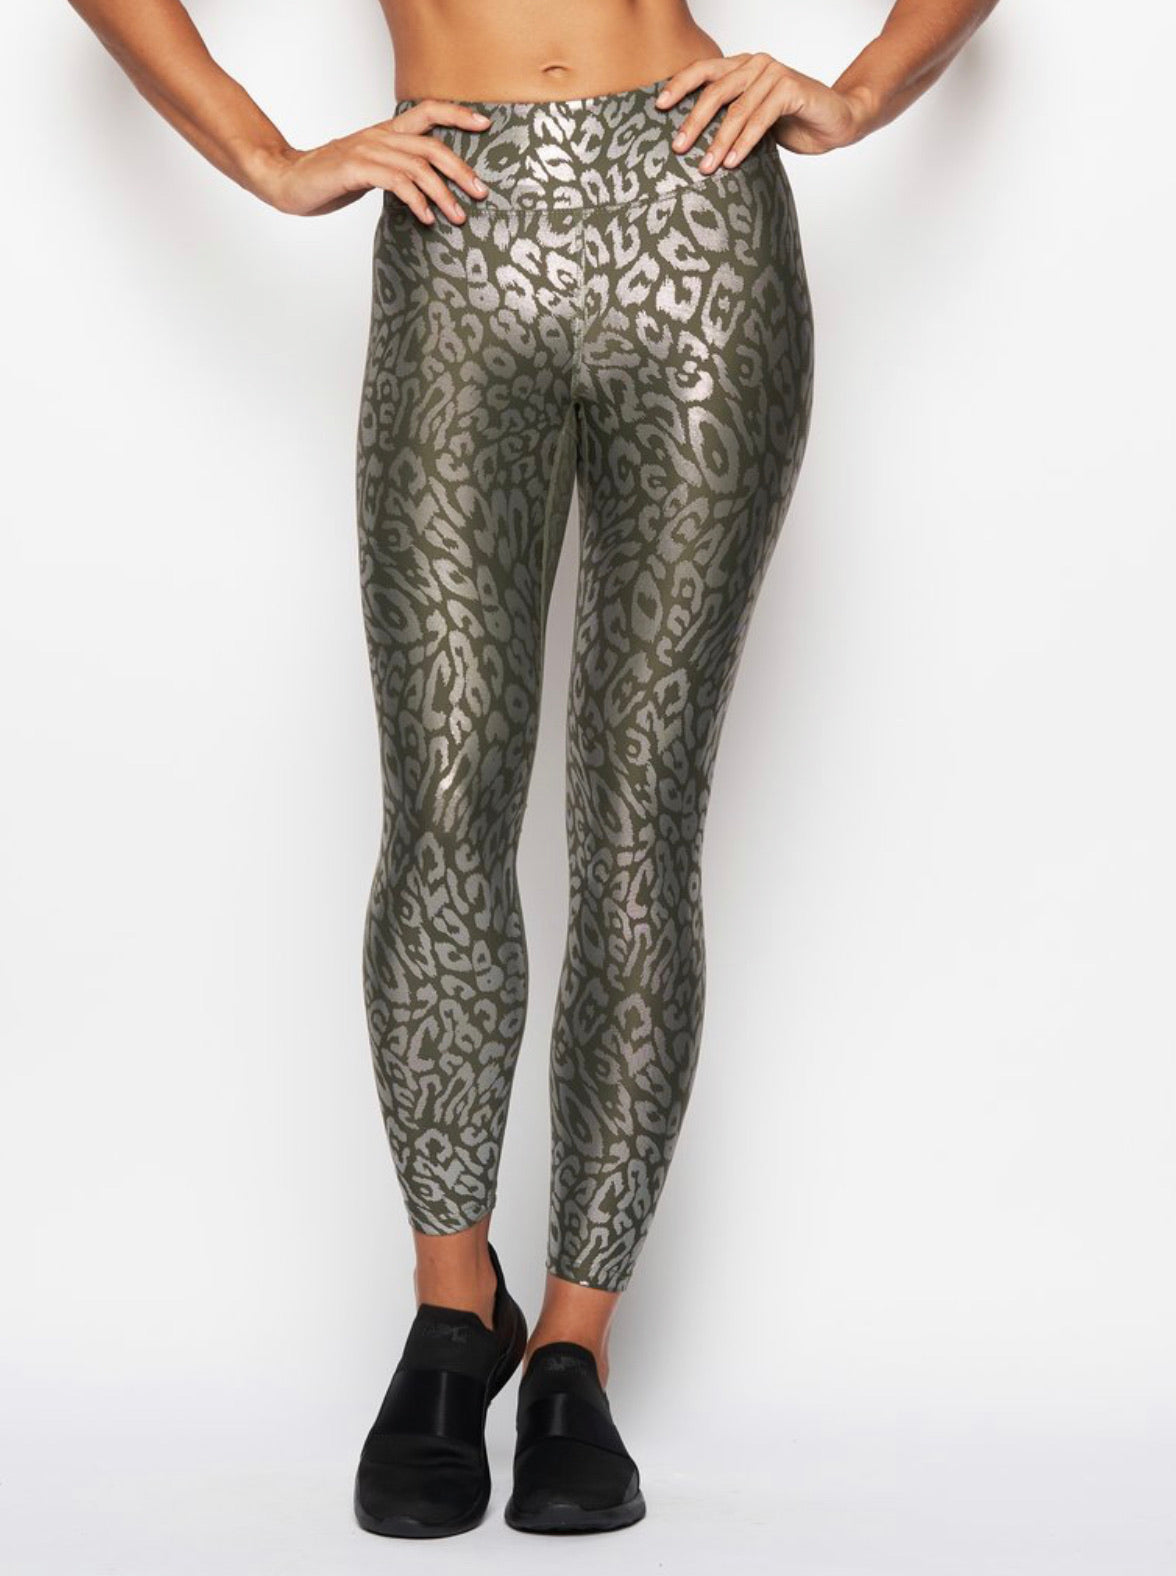 Heroine Army Cheetah Legging